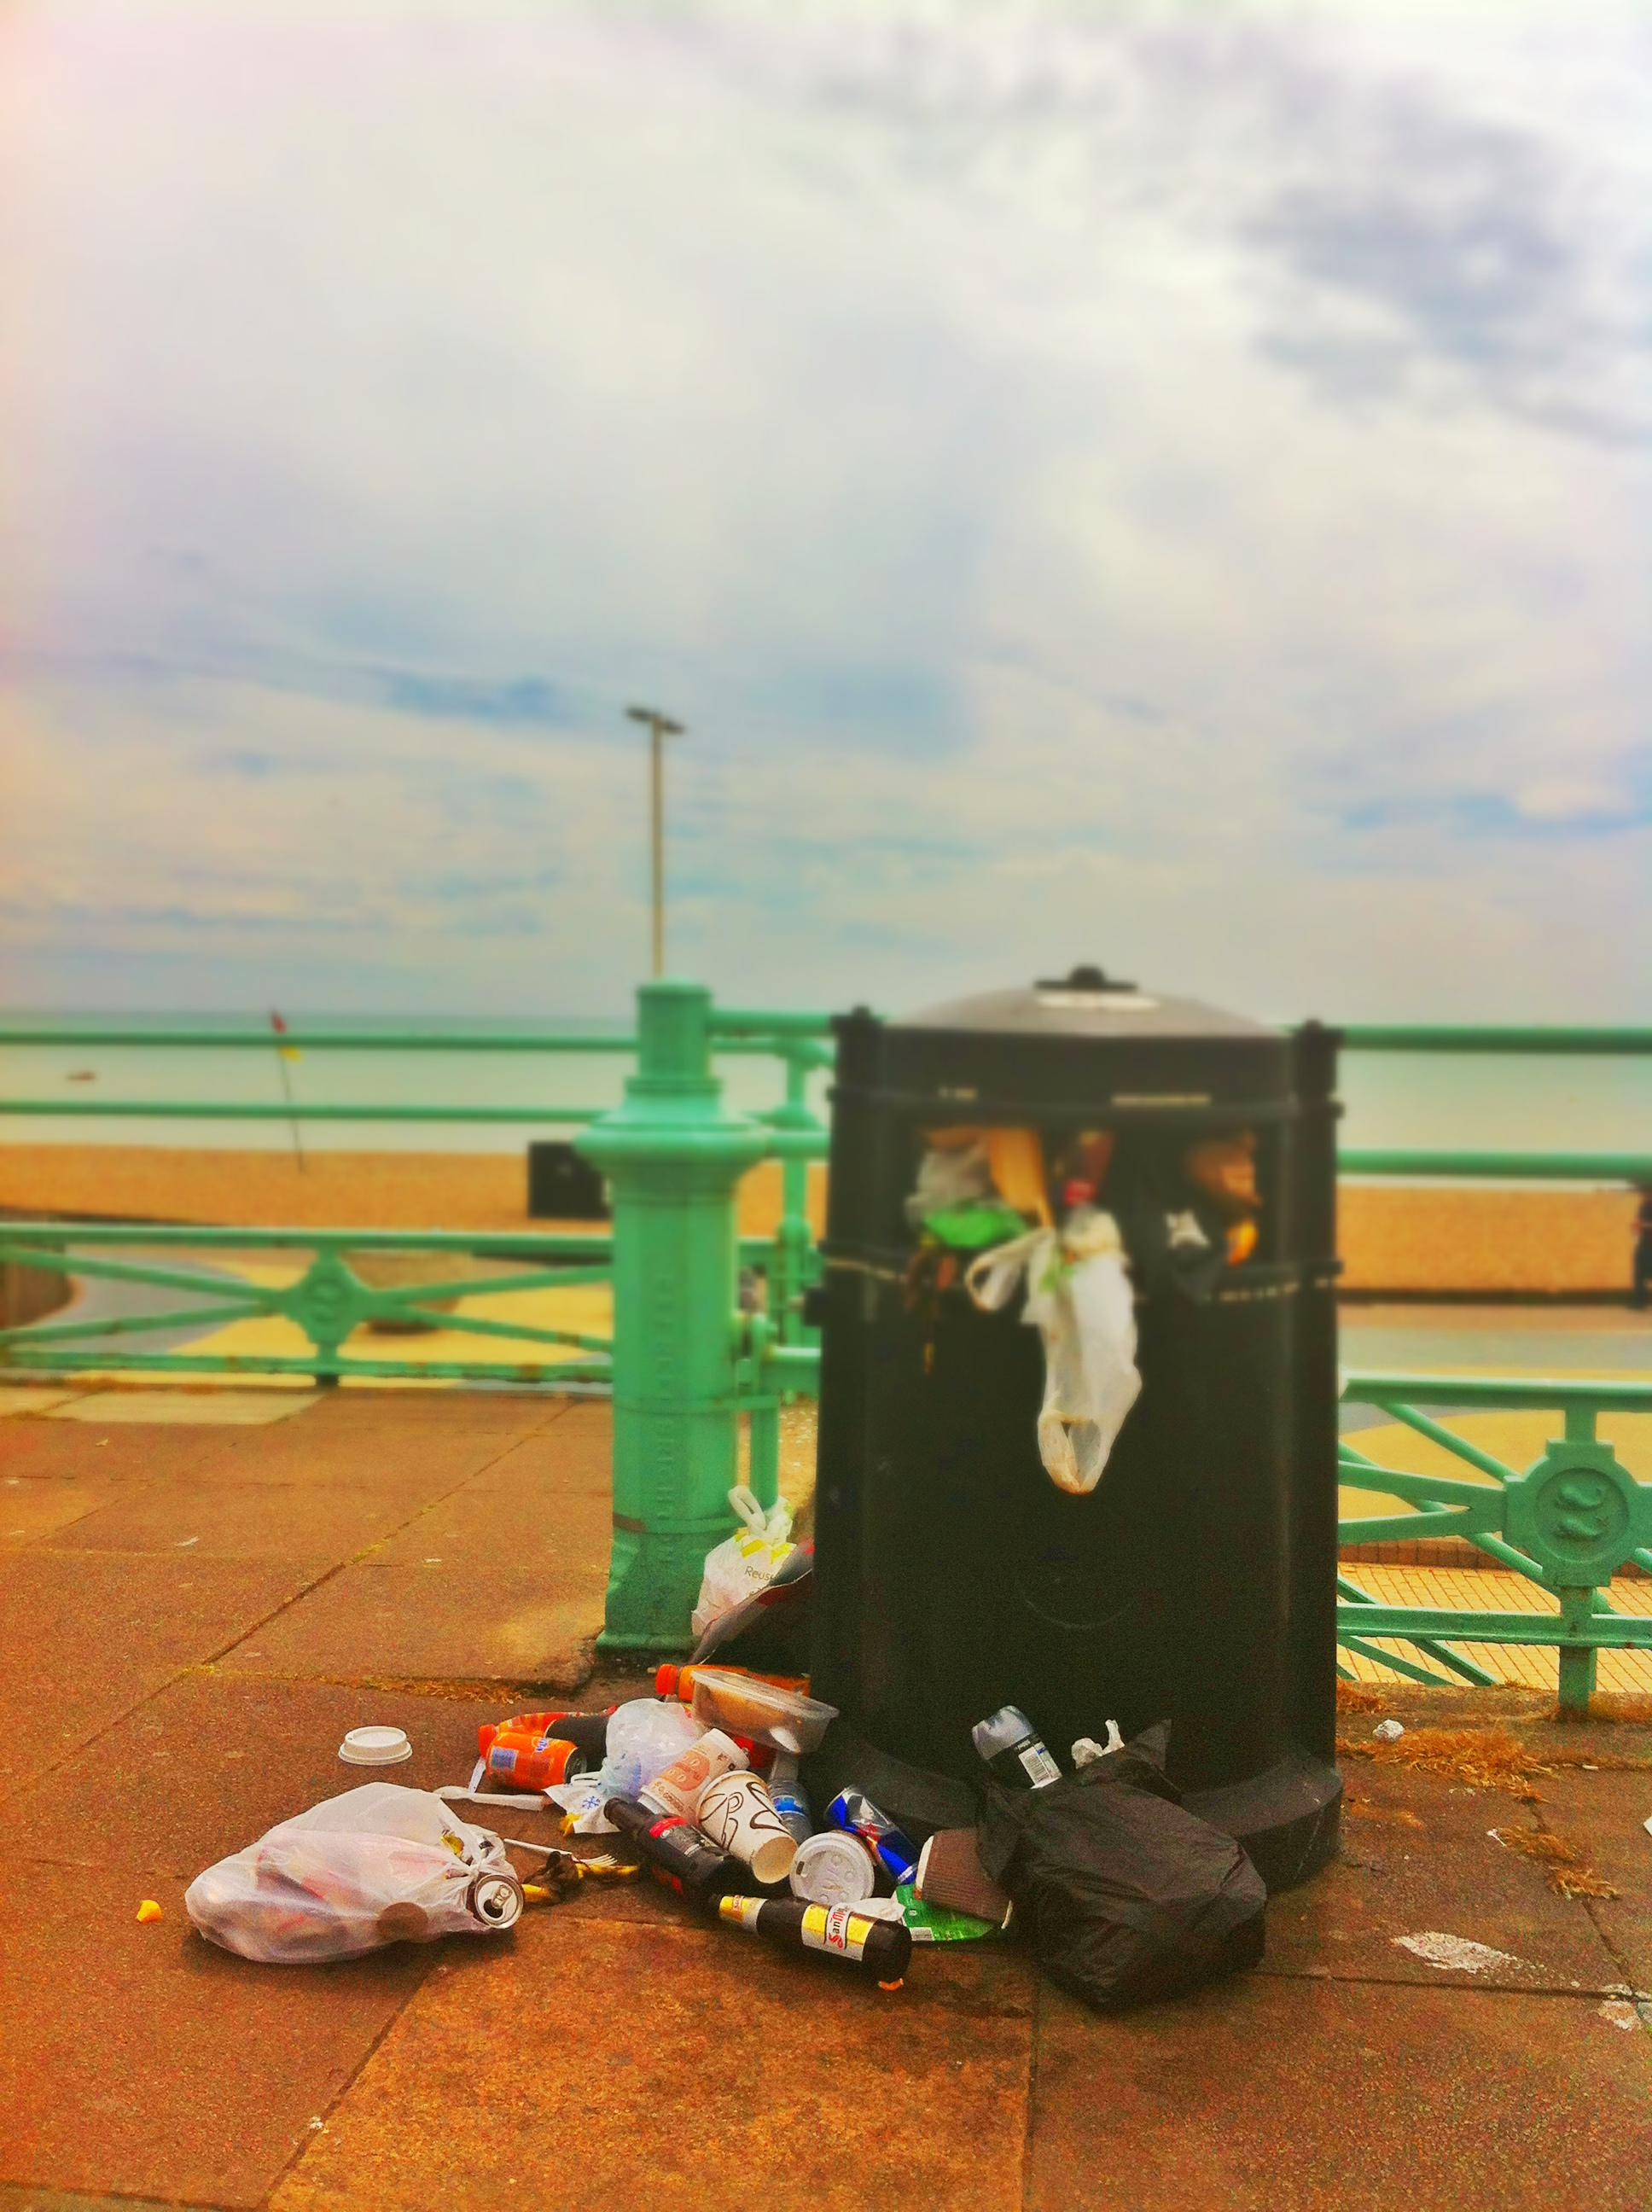 Brighton And Hove - Binmen Strike 2013 - Seafront rubbish